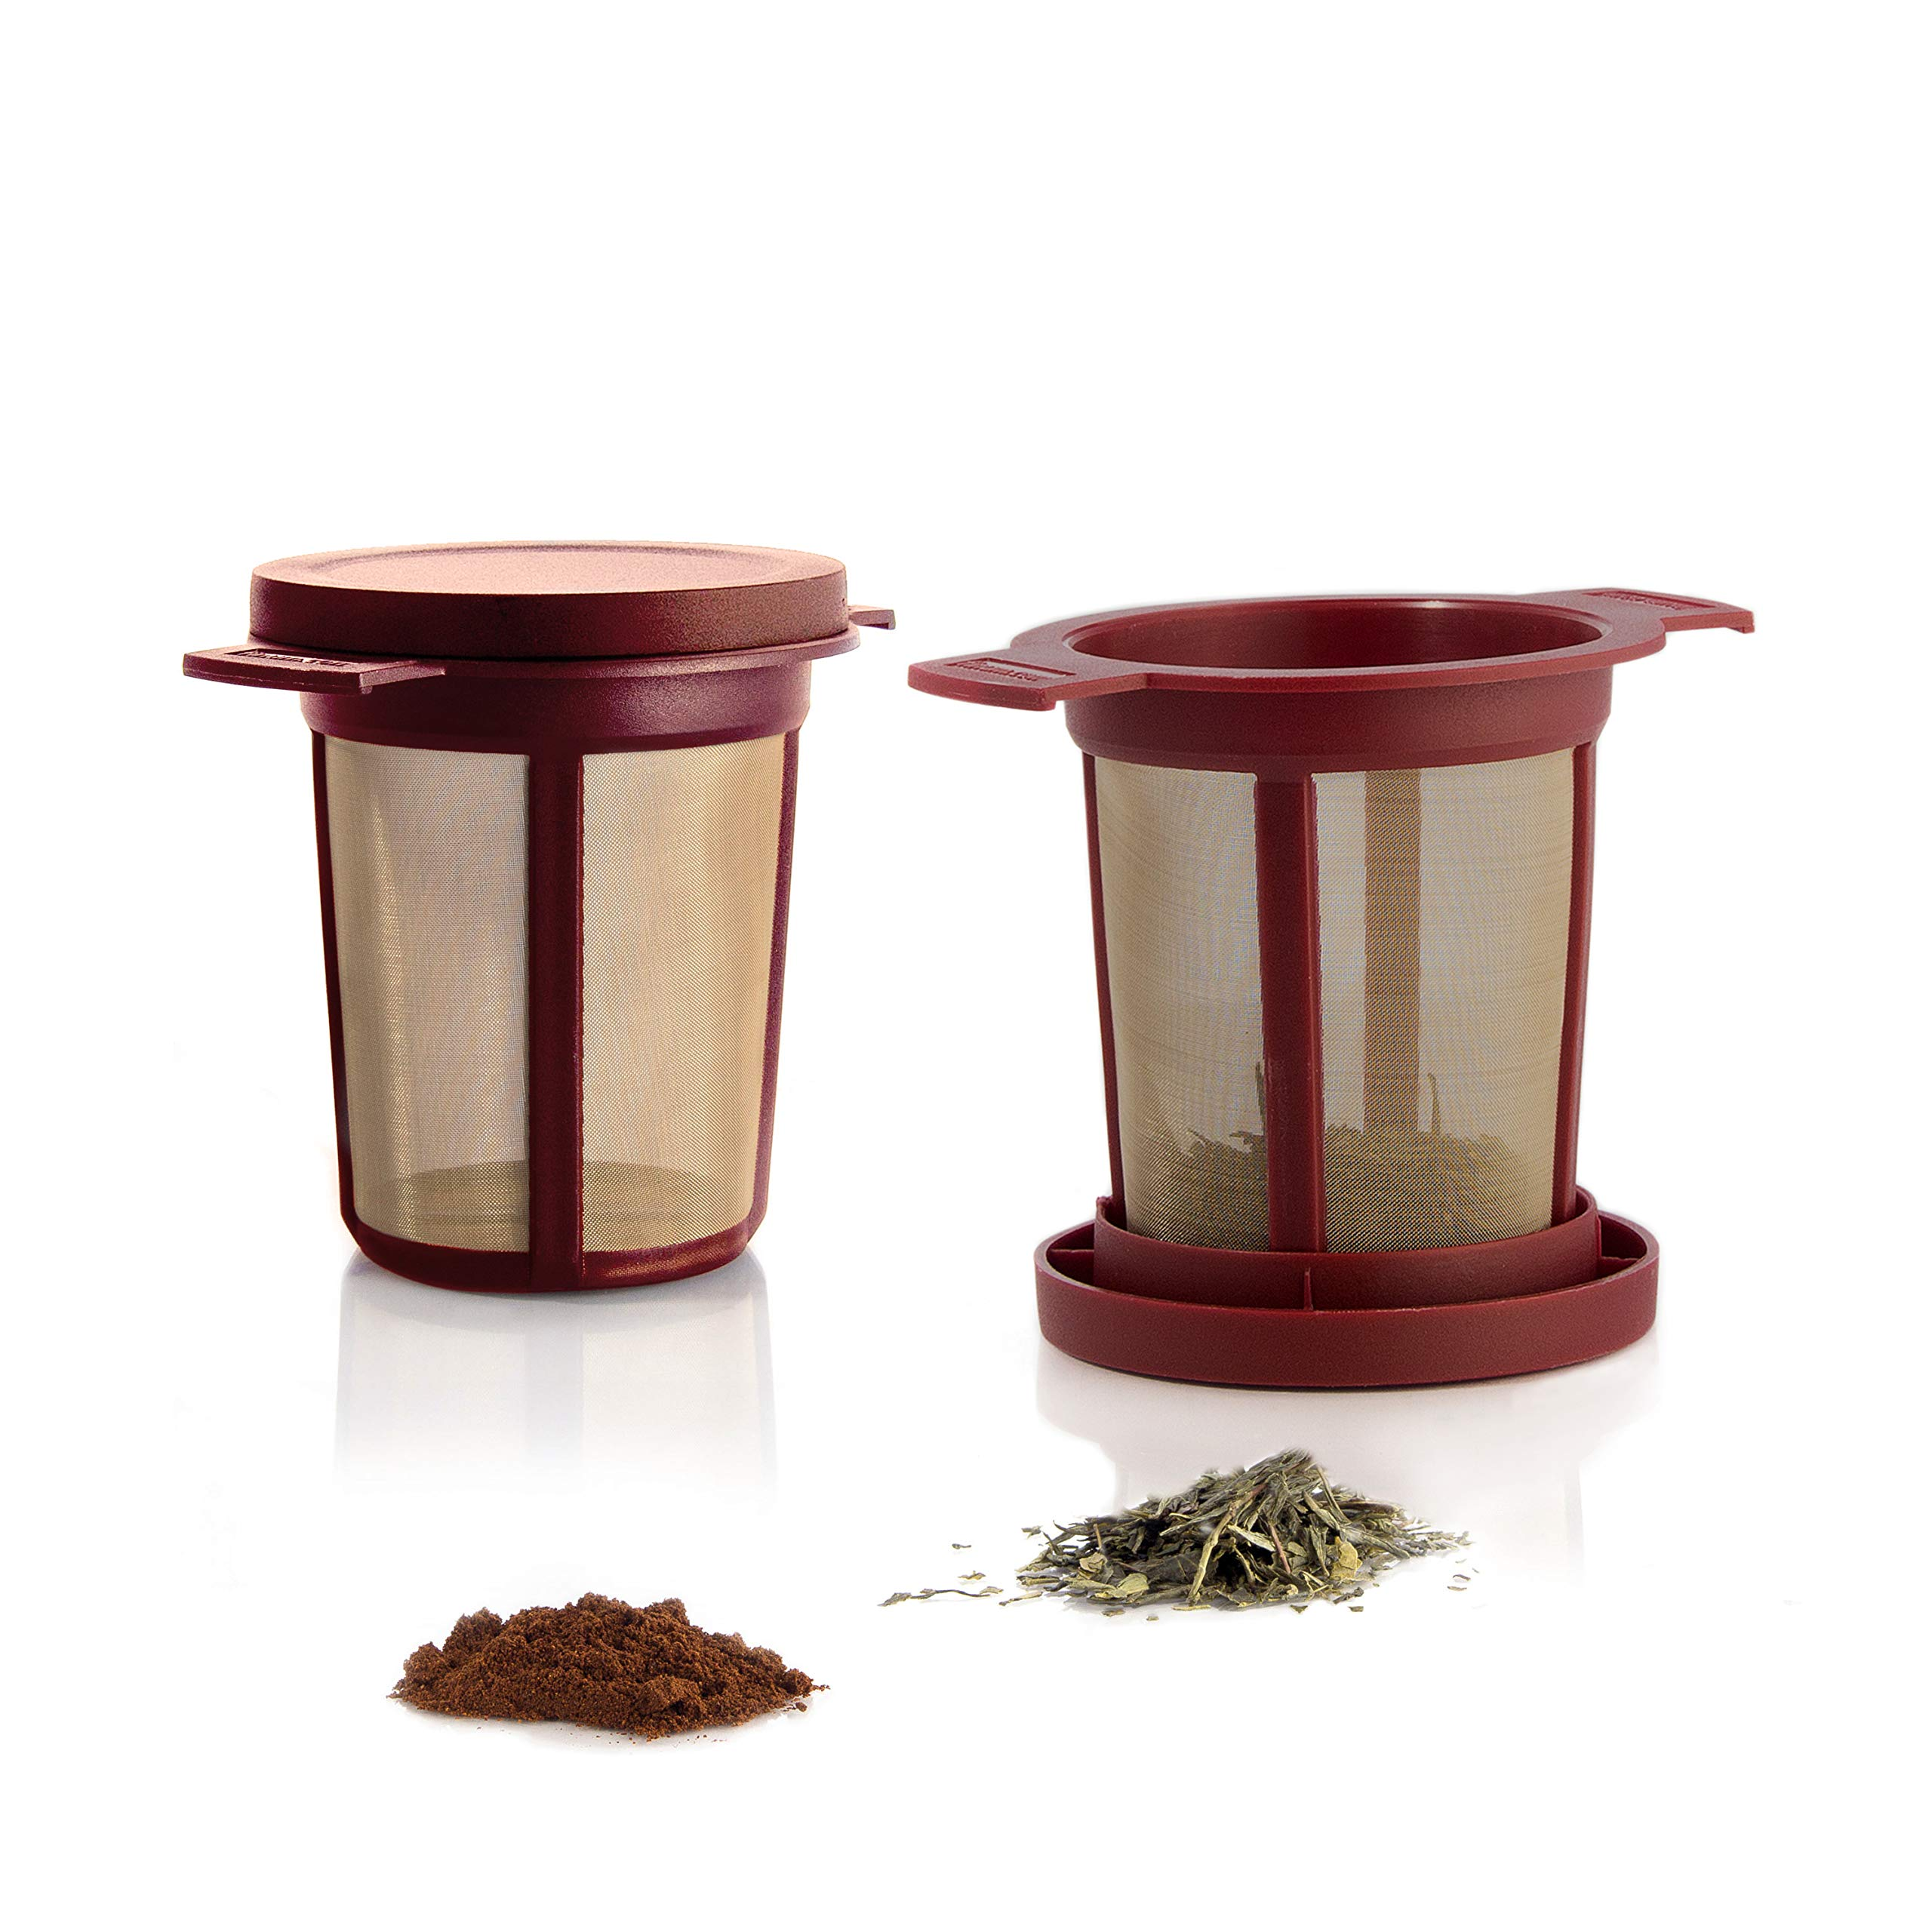 Finum Reusable Stainless Steel Coffee and Tea Infusing Mesh Brewing Basket, Medium, Red